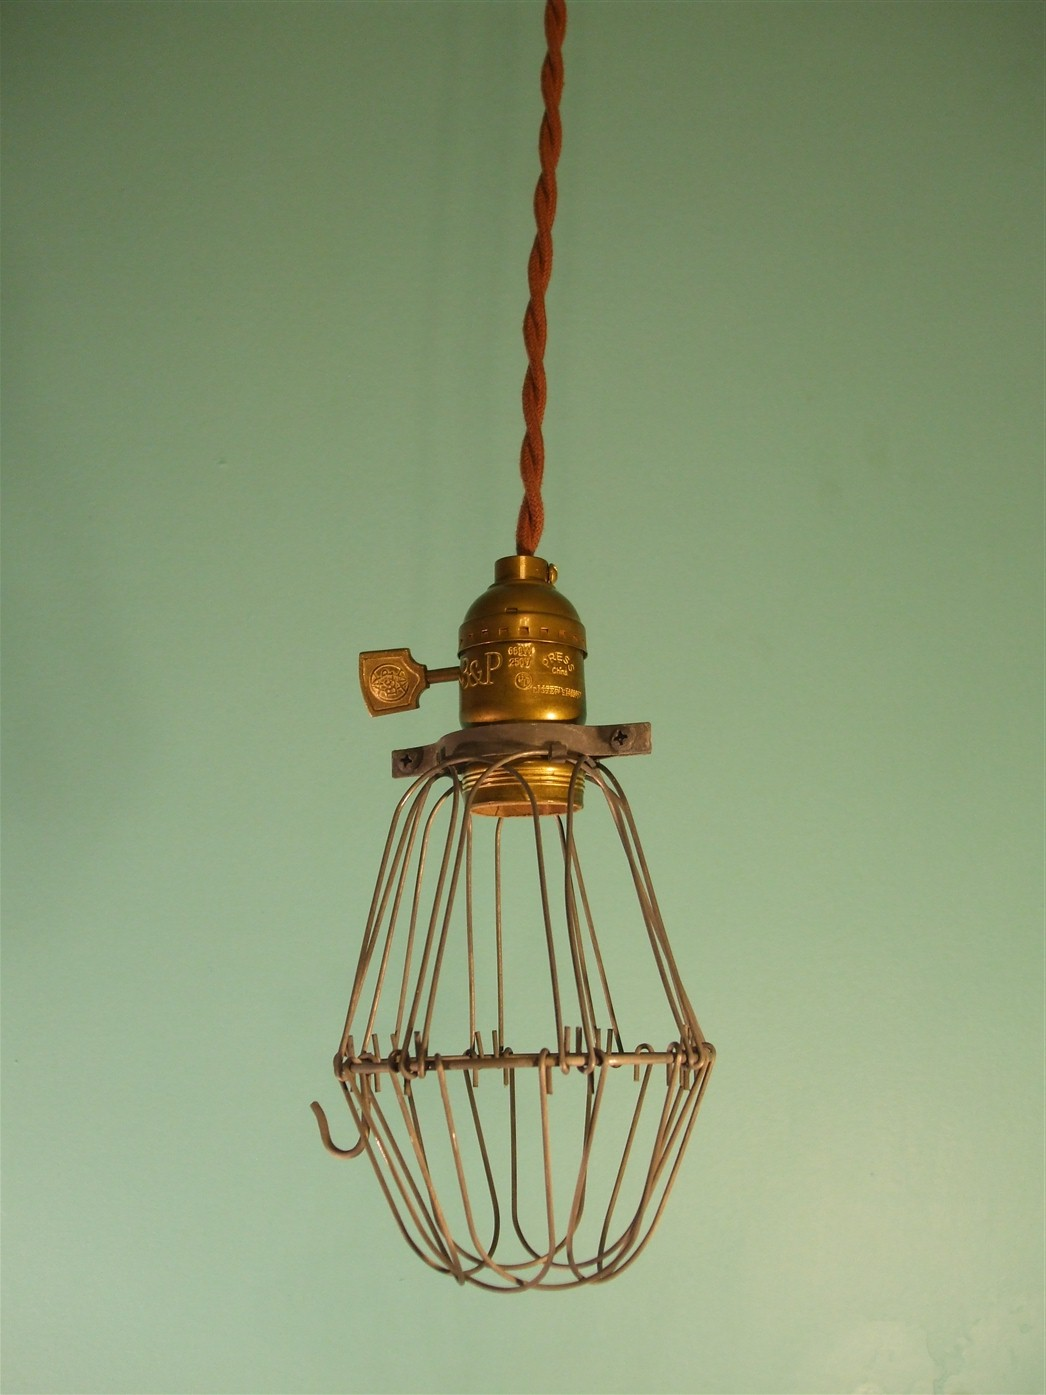 Vintage Industrial Style Cage Pendant Lamp on Storenvy